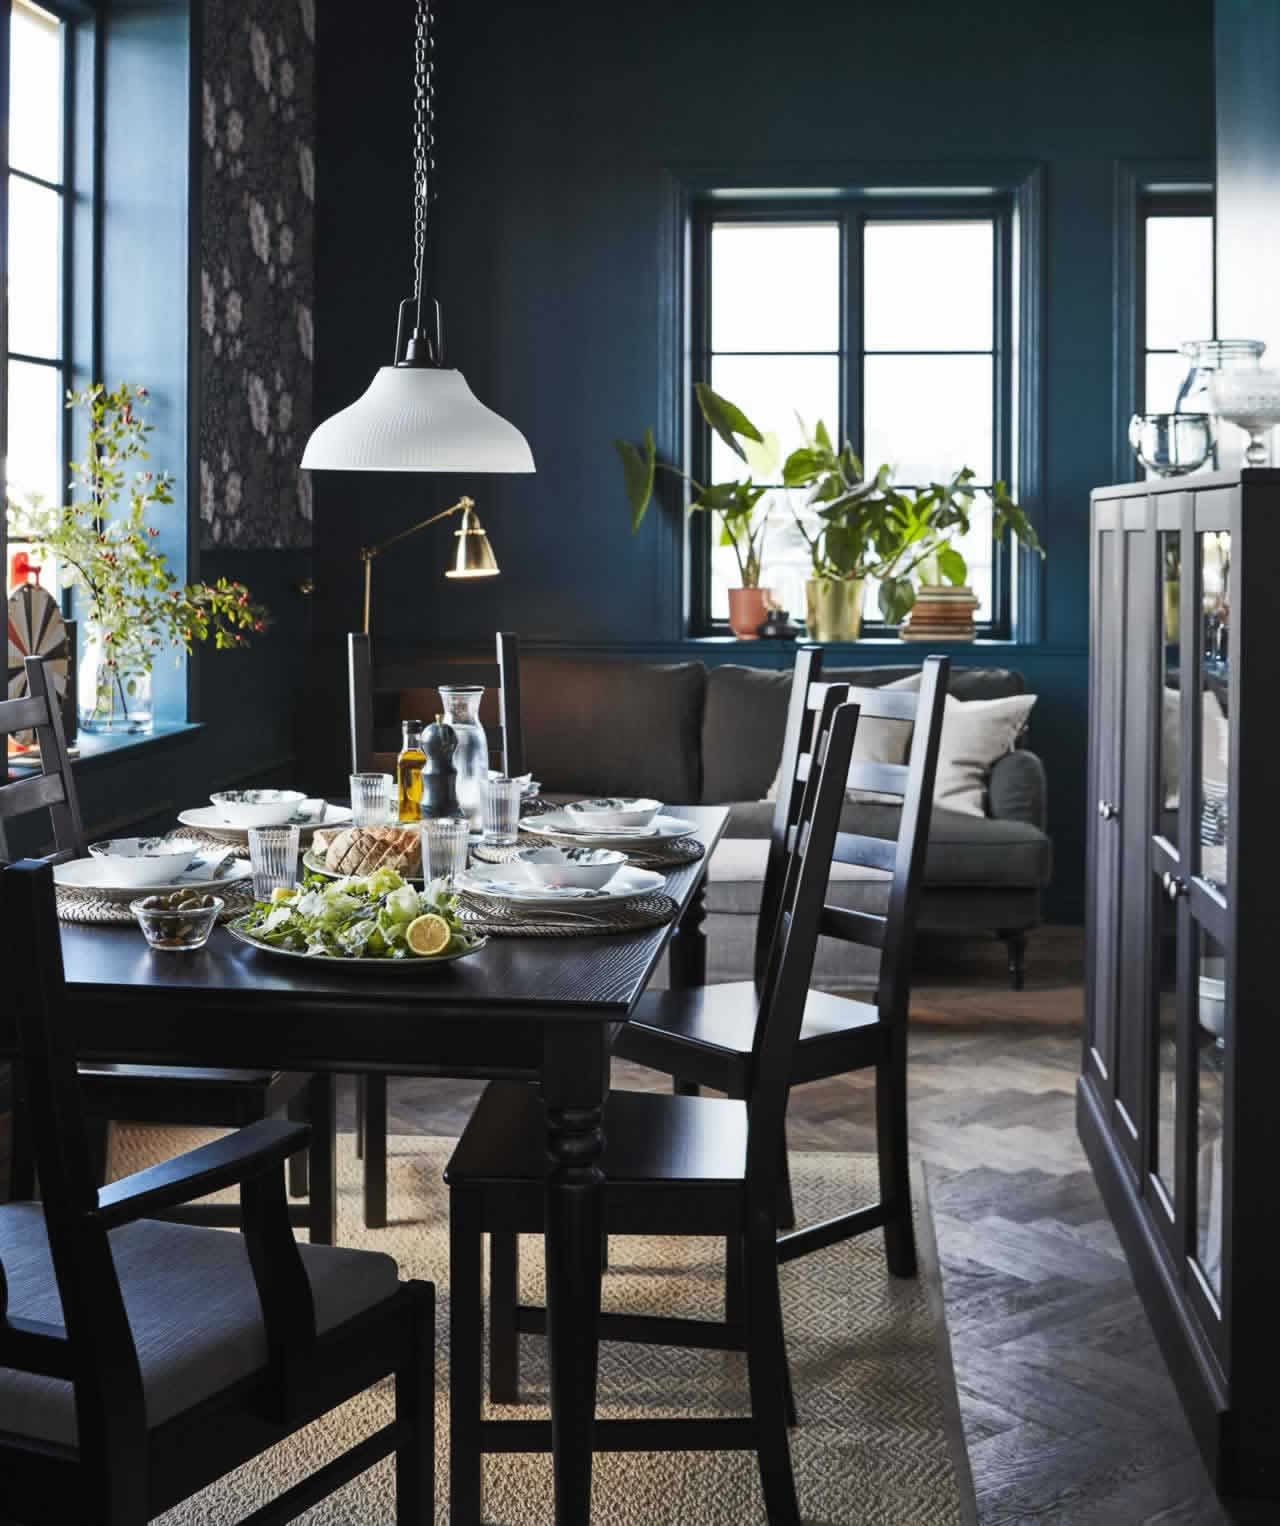 IKEA Ideas - A great family dinner in four hopeful steps